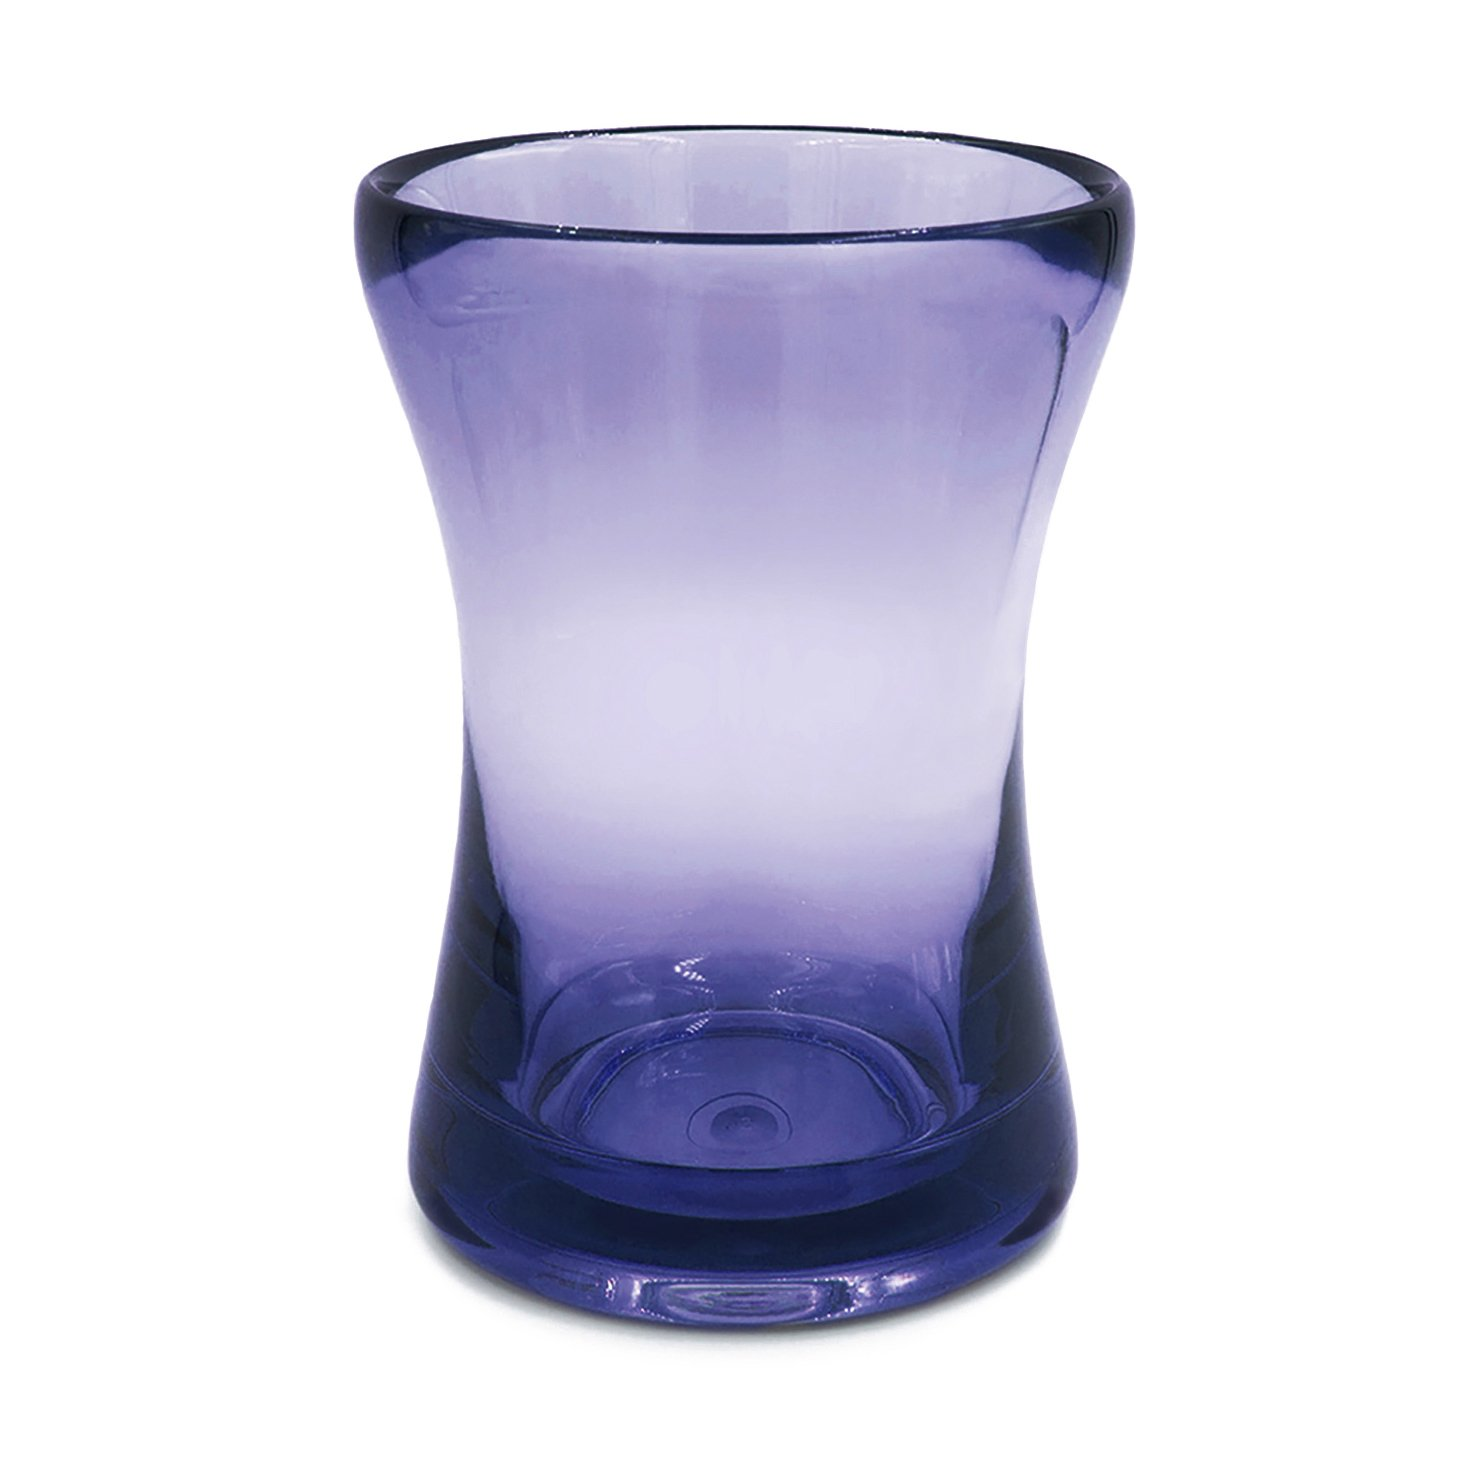 Briiith Ocean Bath Collection, Tumbler (Radiant Orchid) HO' S ART CO. LTD BR-TU004